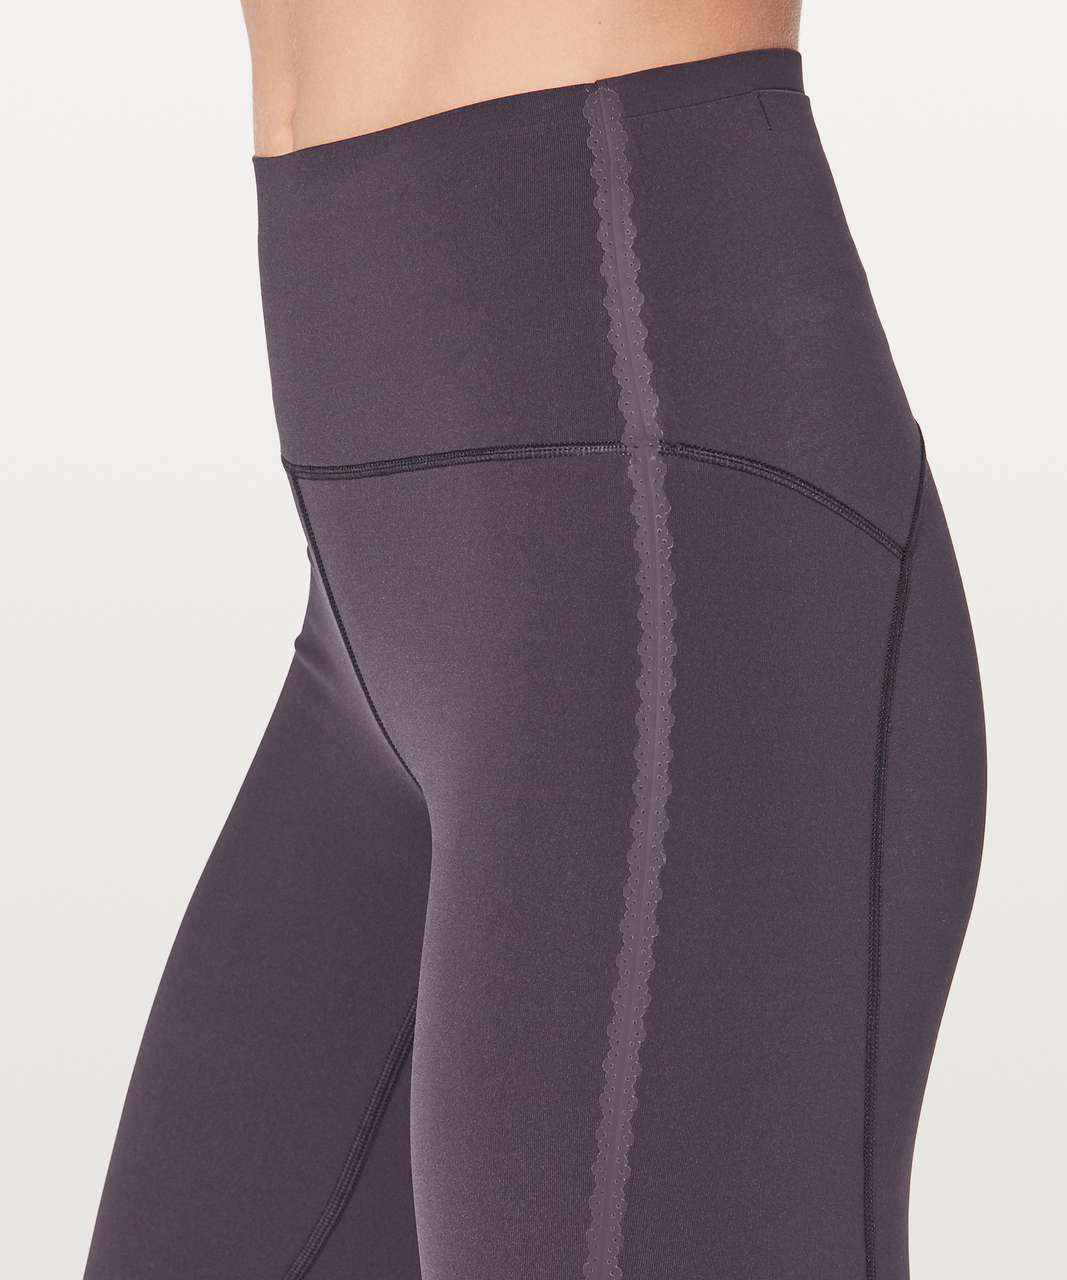 "Lululemon Stop Drop & Squat Tight 28"" - Boysenberry"